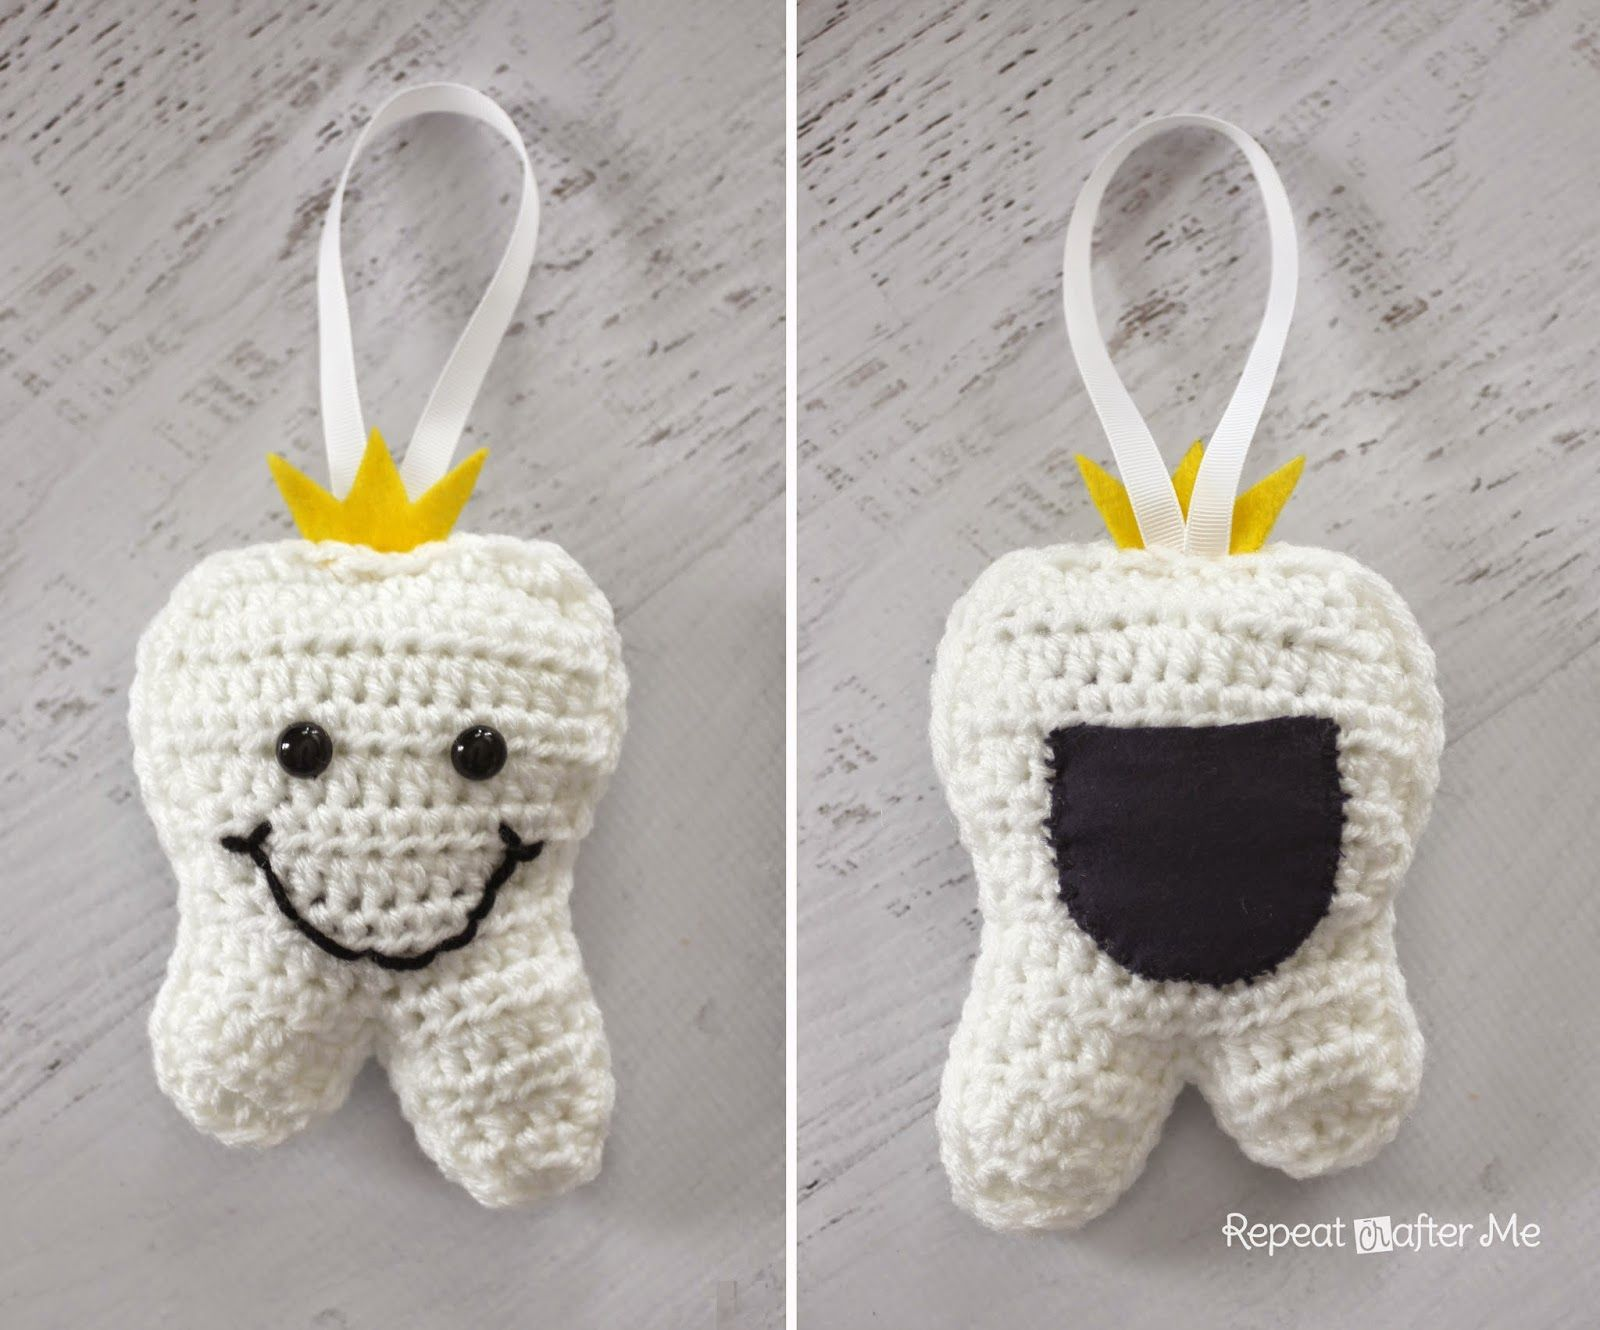 Crochet Tooth Fairy Pillow - Repeat Crafter Me | Strikke/hekle ...